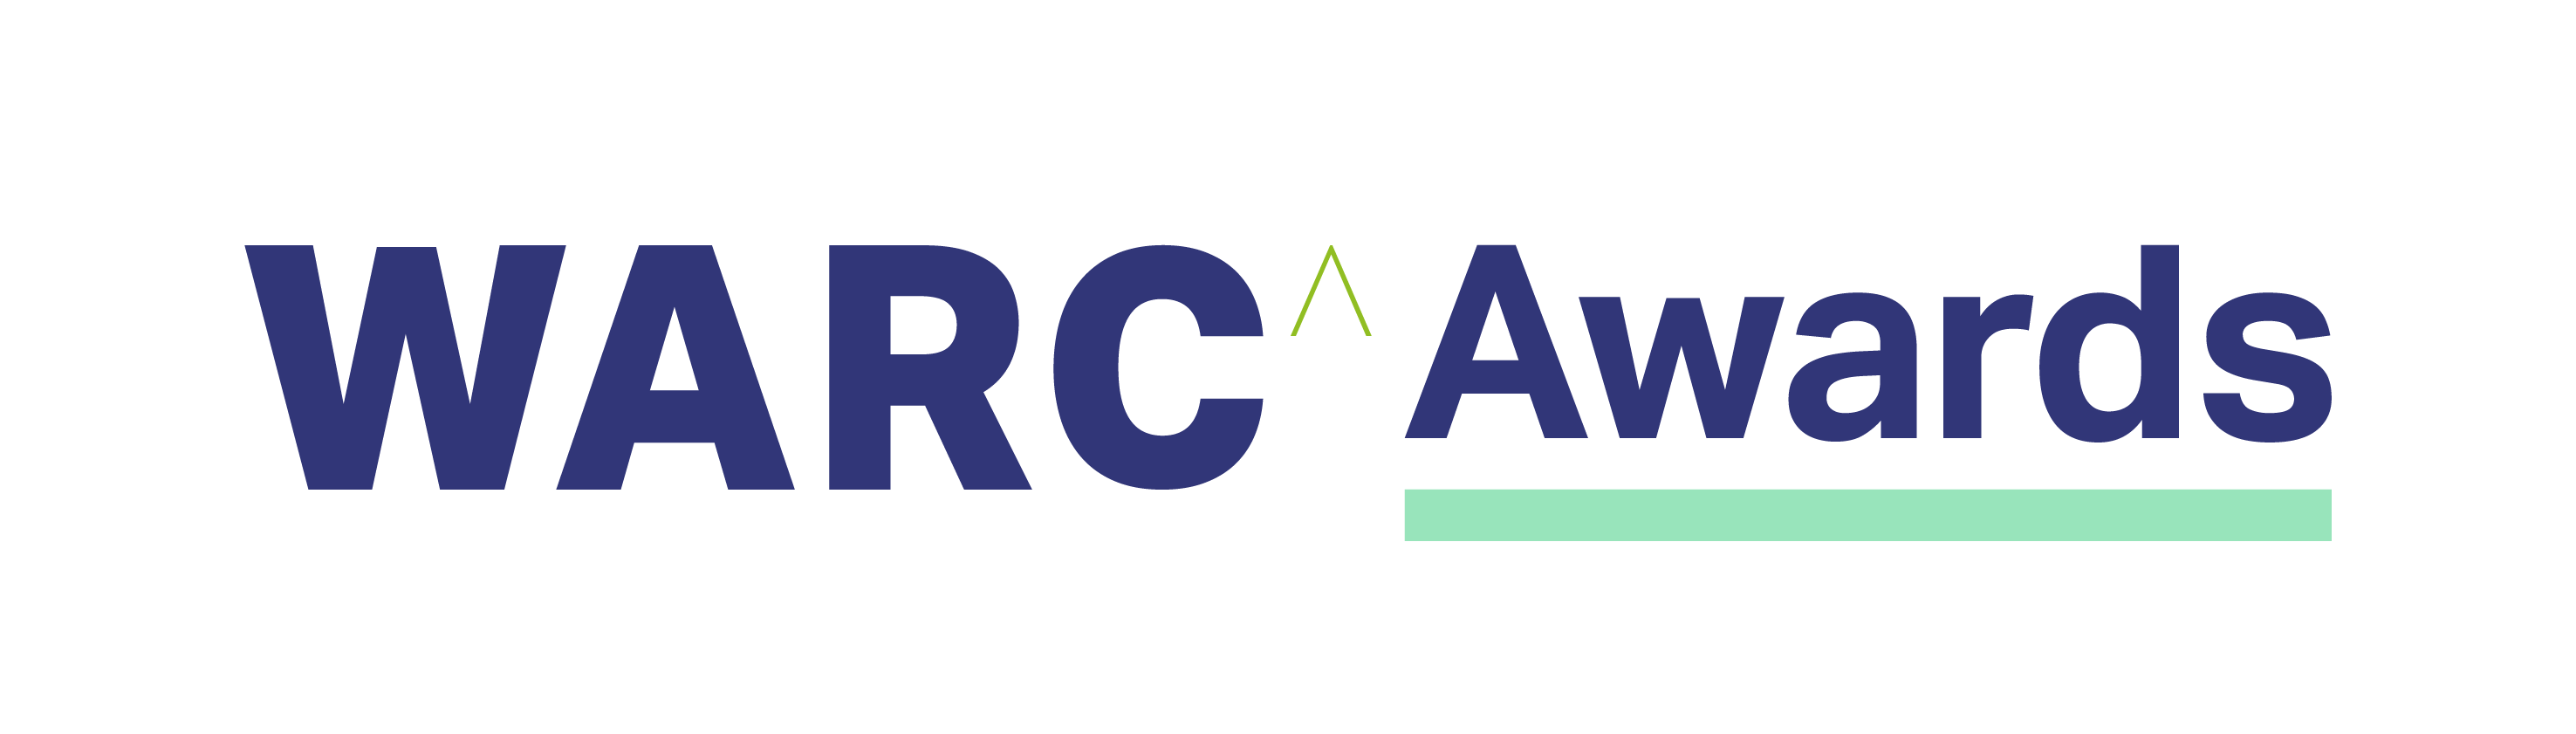 WARC Awards